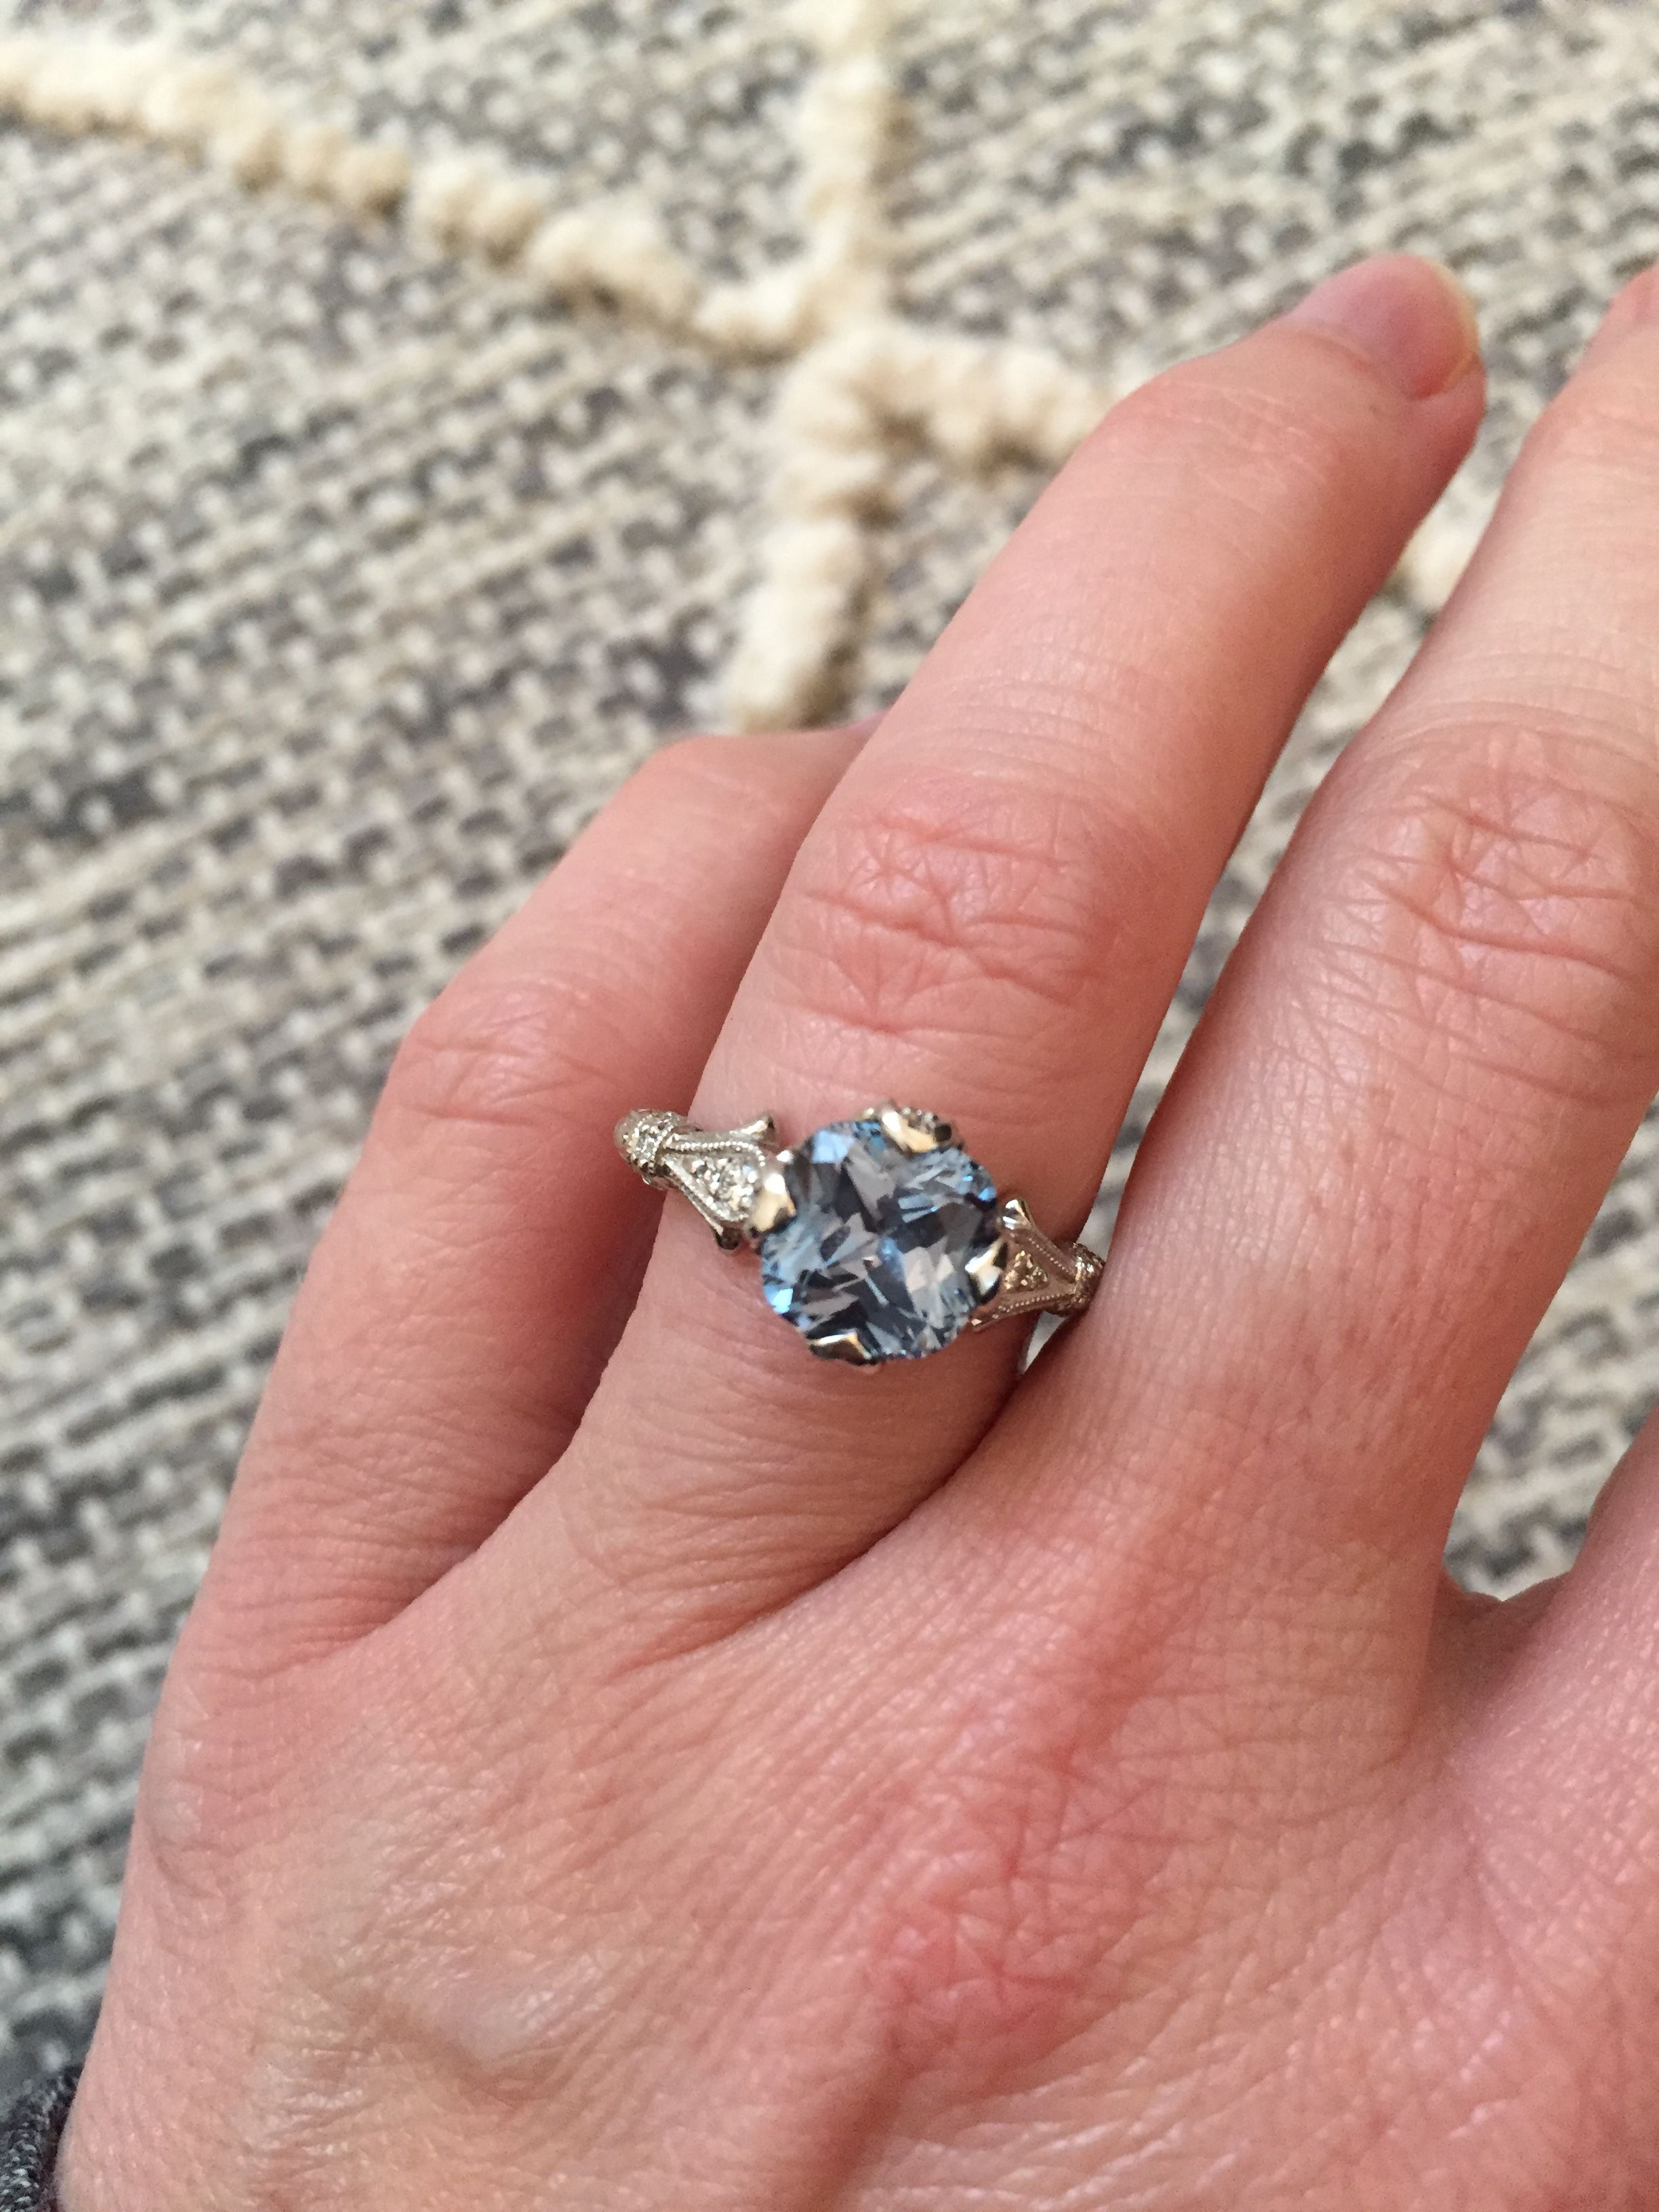 Please share your sapphire/gemstone solitaires! - Weddingbee | Page ...